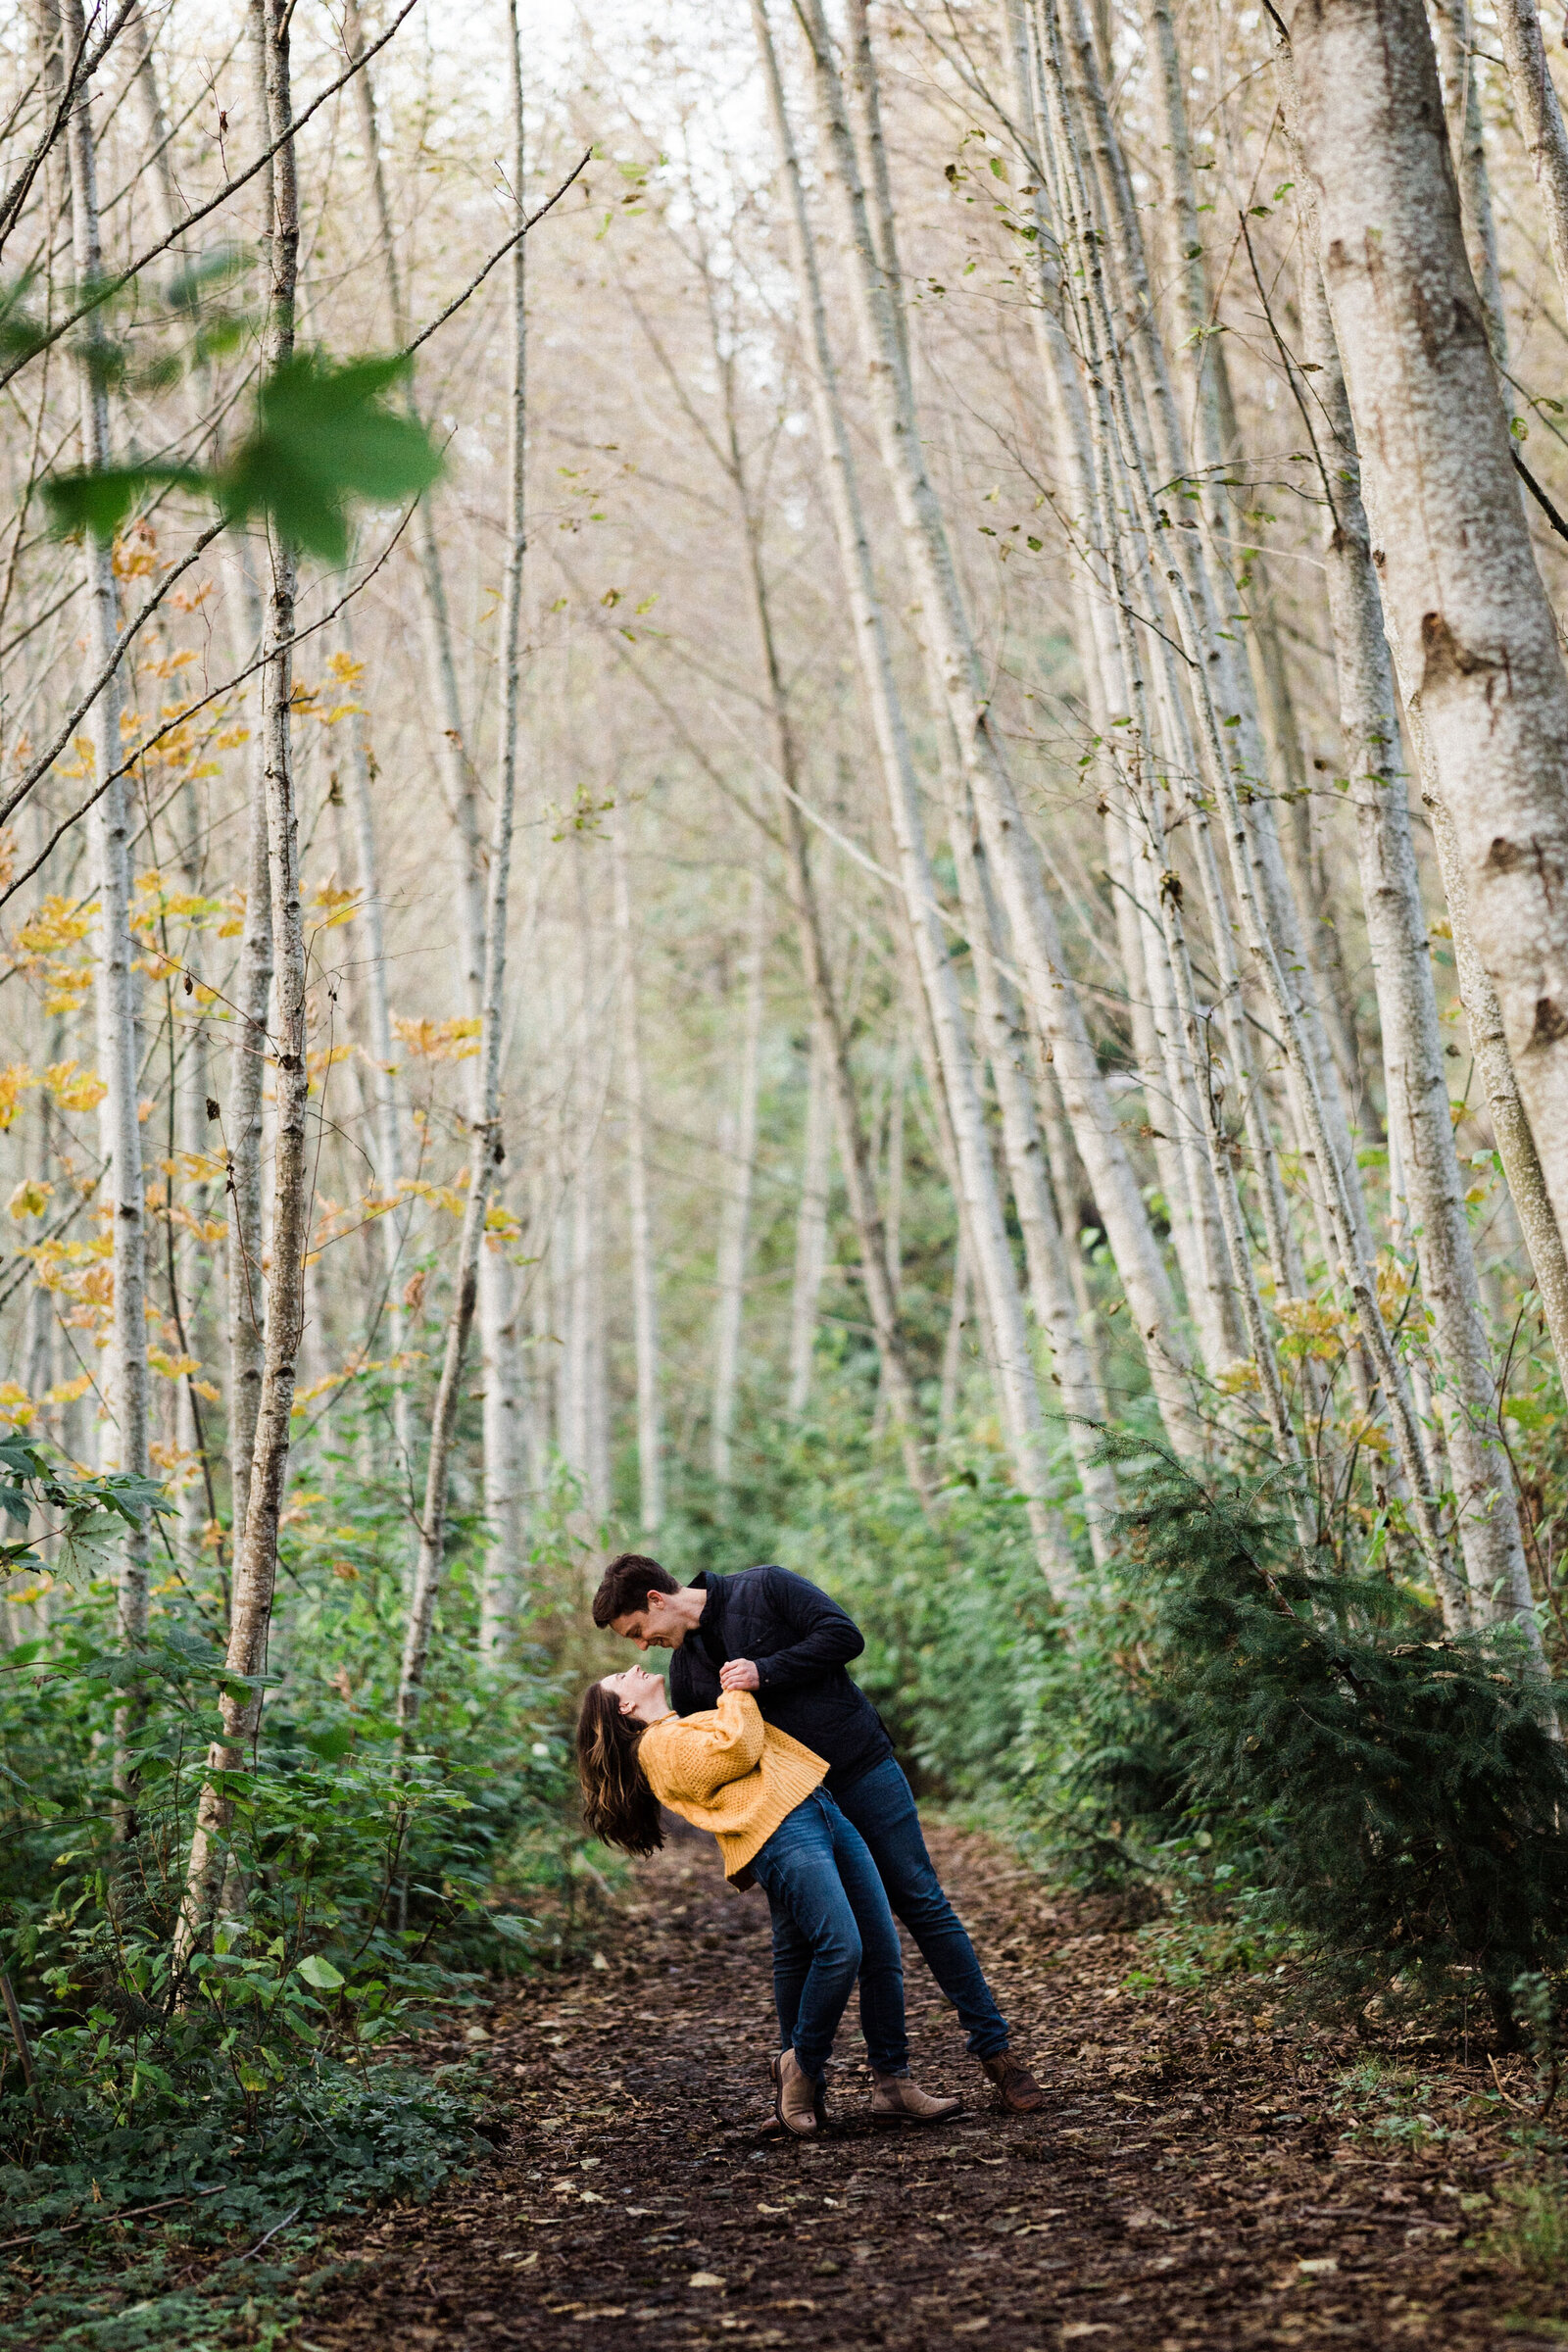 Birch trees make the mood romantic and intimate at best spot for engagement photos in Seattle, forests of Discovery Park